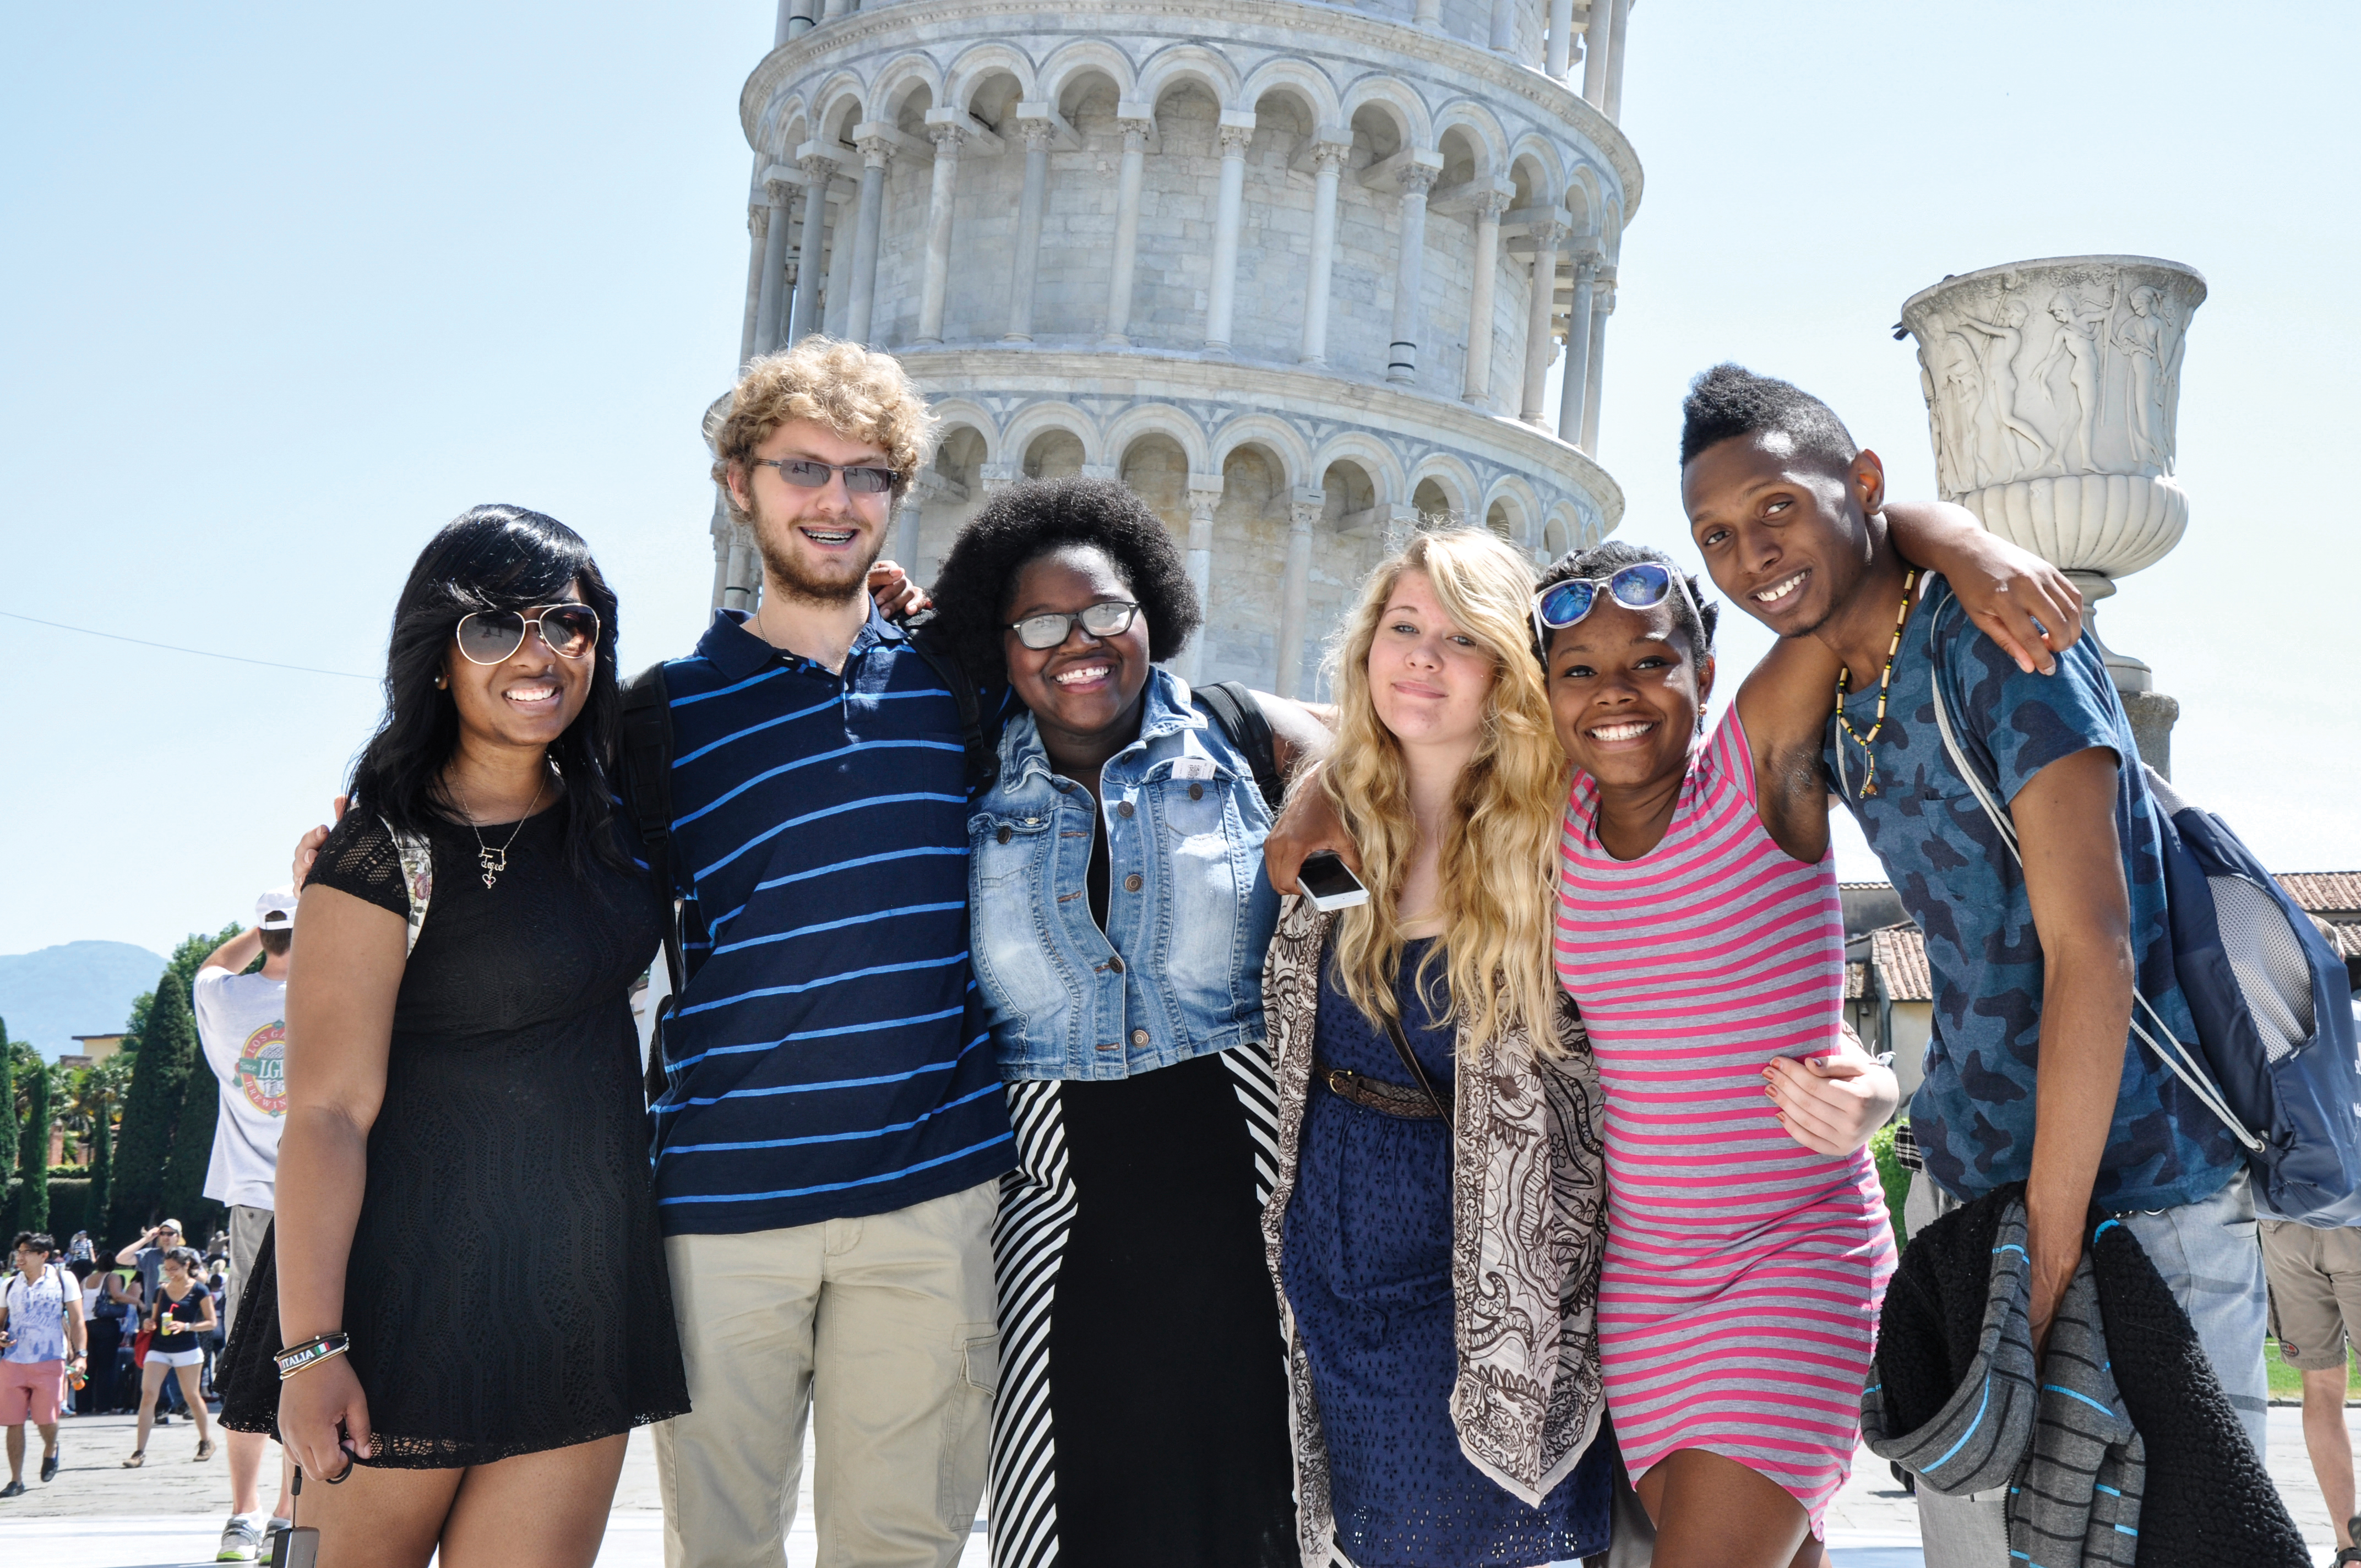 Kent State students visit Pisa, Italy